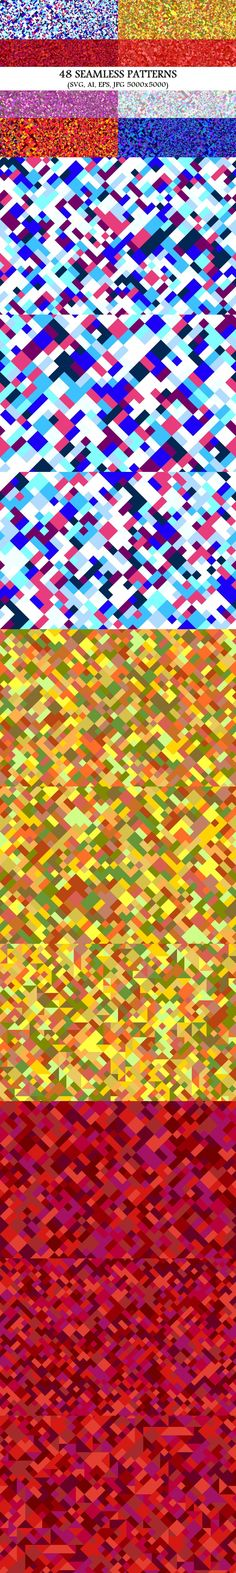 48 Seamless Geometrical Patterns #BackgroundSets #BackgroundCollection #repeat #abstract #abstractbackground #abstract #seamlesspattern #seamlesspattern #PremiumBackgrounds #BackgroundSet #patterns #seamlesspattern #pattern #backdrop #abstractbackgrounds #MulticolorBackgrounds #background #seamless #CheapVectorBackgrounds